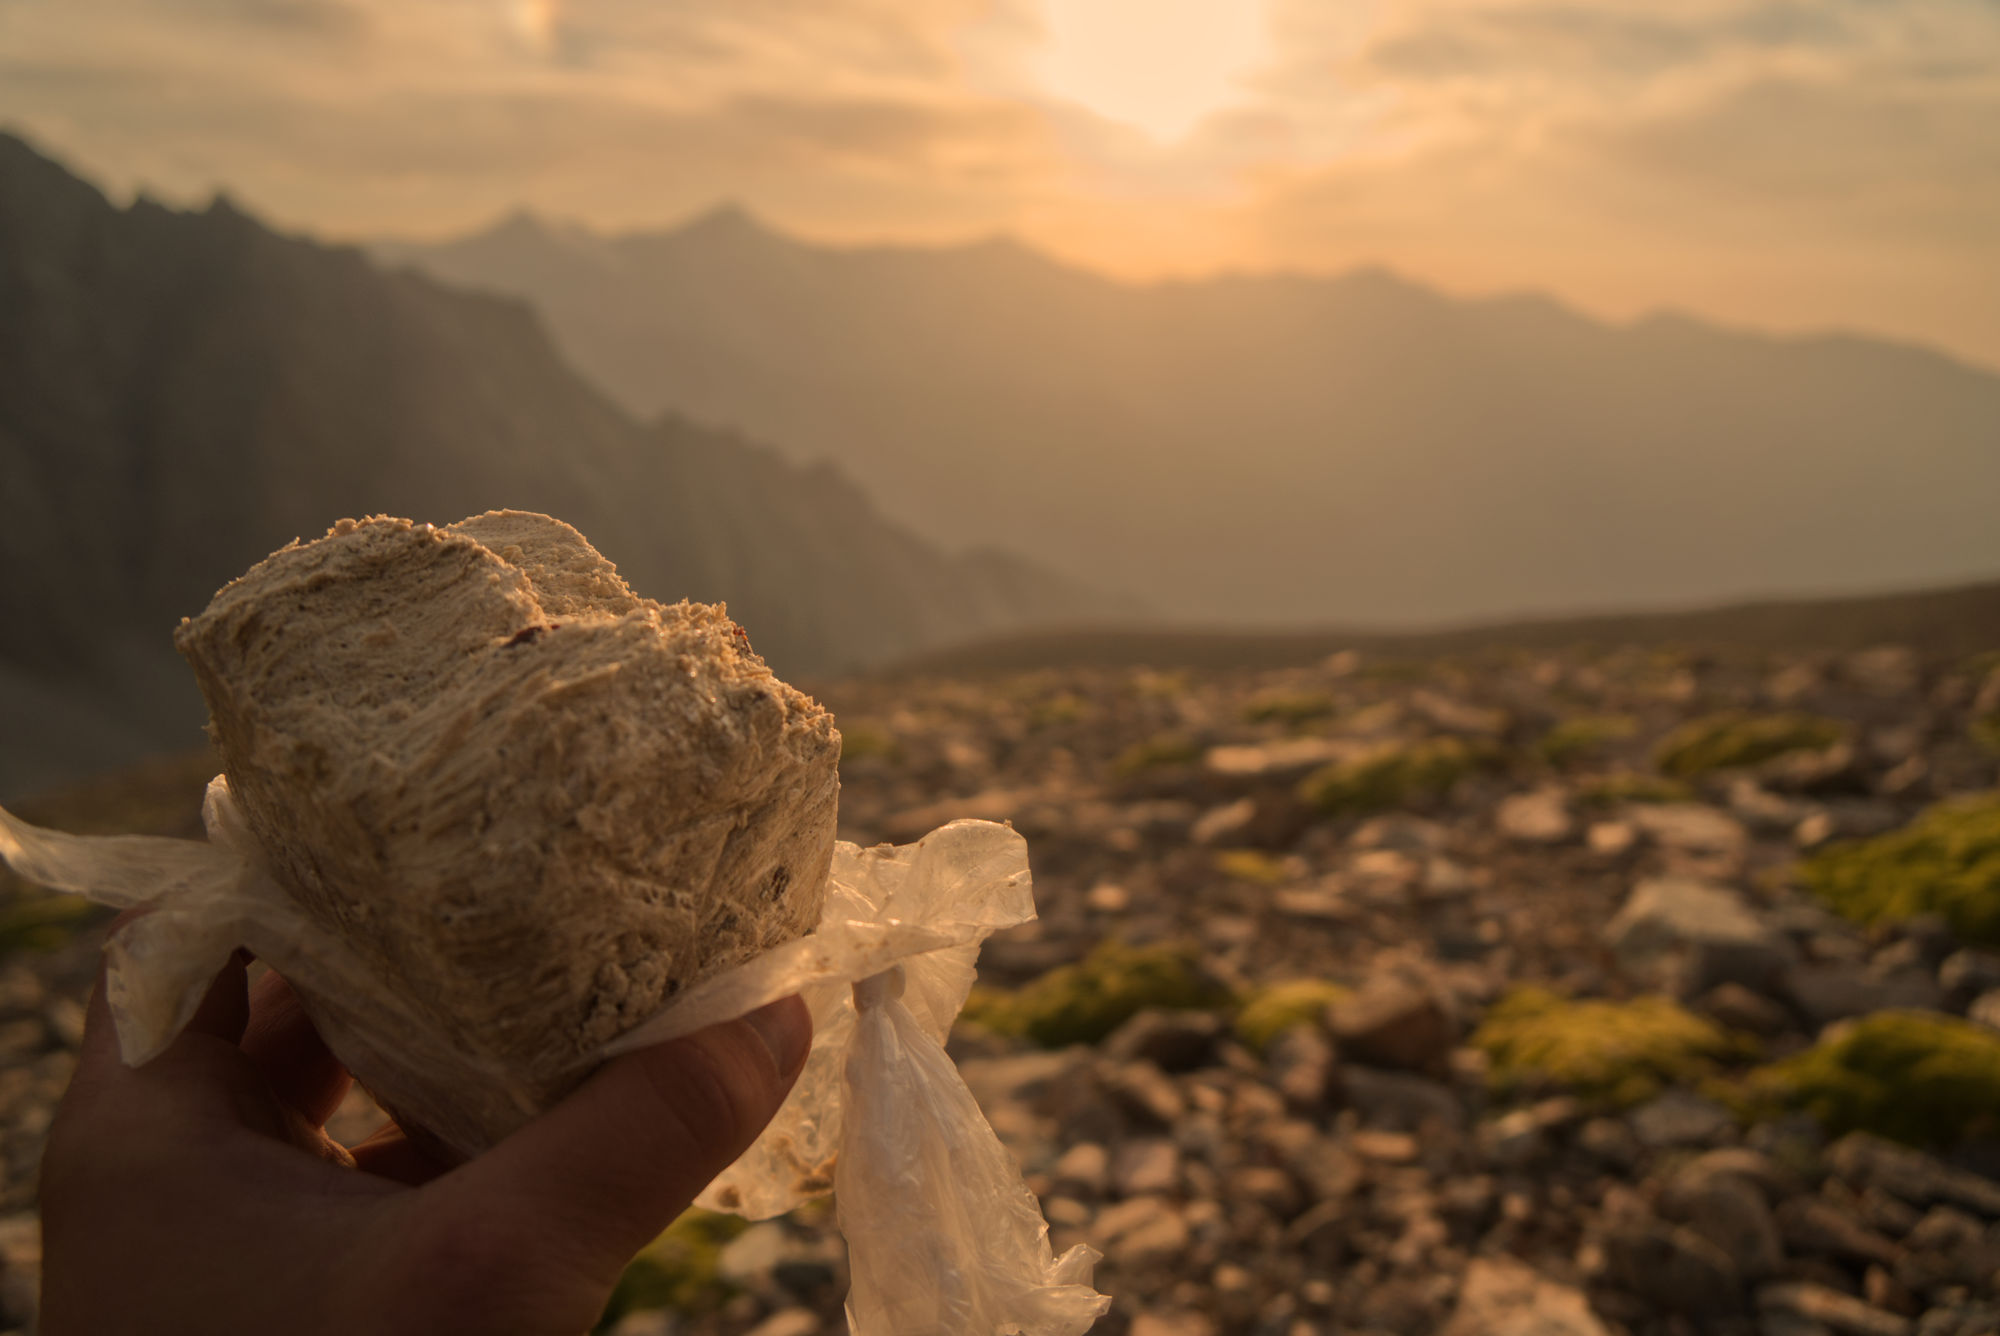 Halva - best high calory food that I found in Kyrgyzstan.